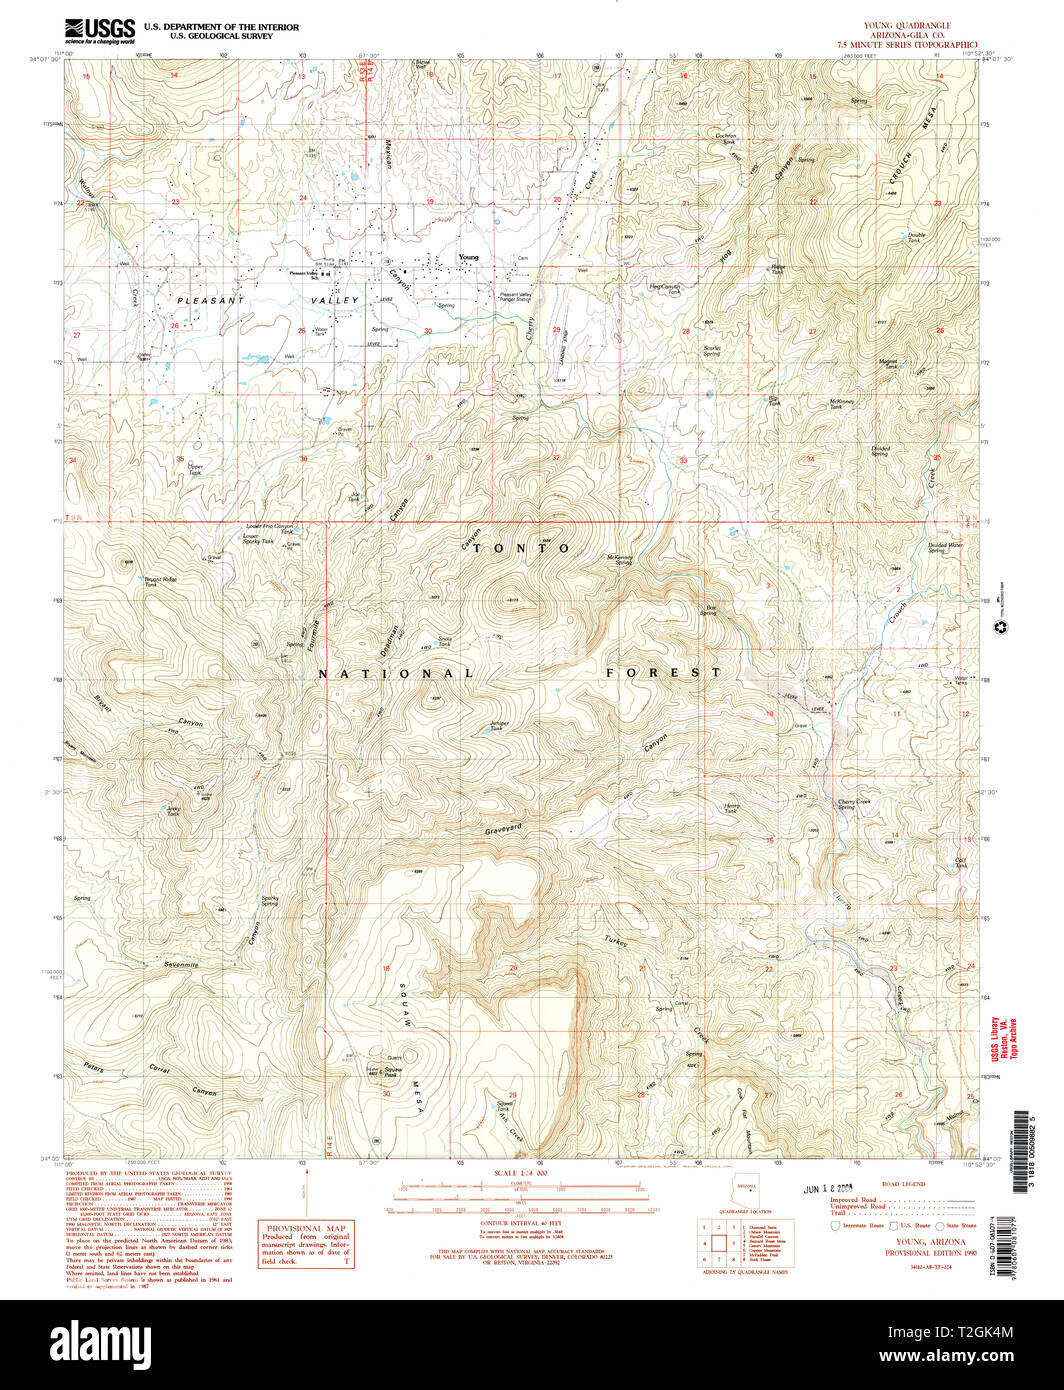 Map Of Young Arizona.Usgs Topo Map Arizona Az Young 314208 1990 24000 Restoration Stock